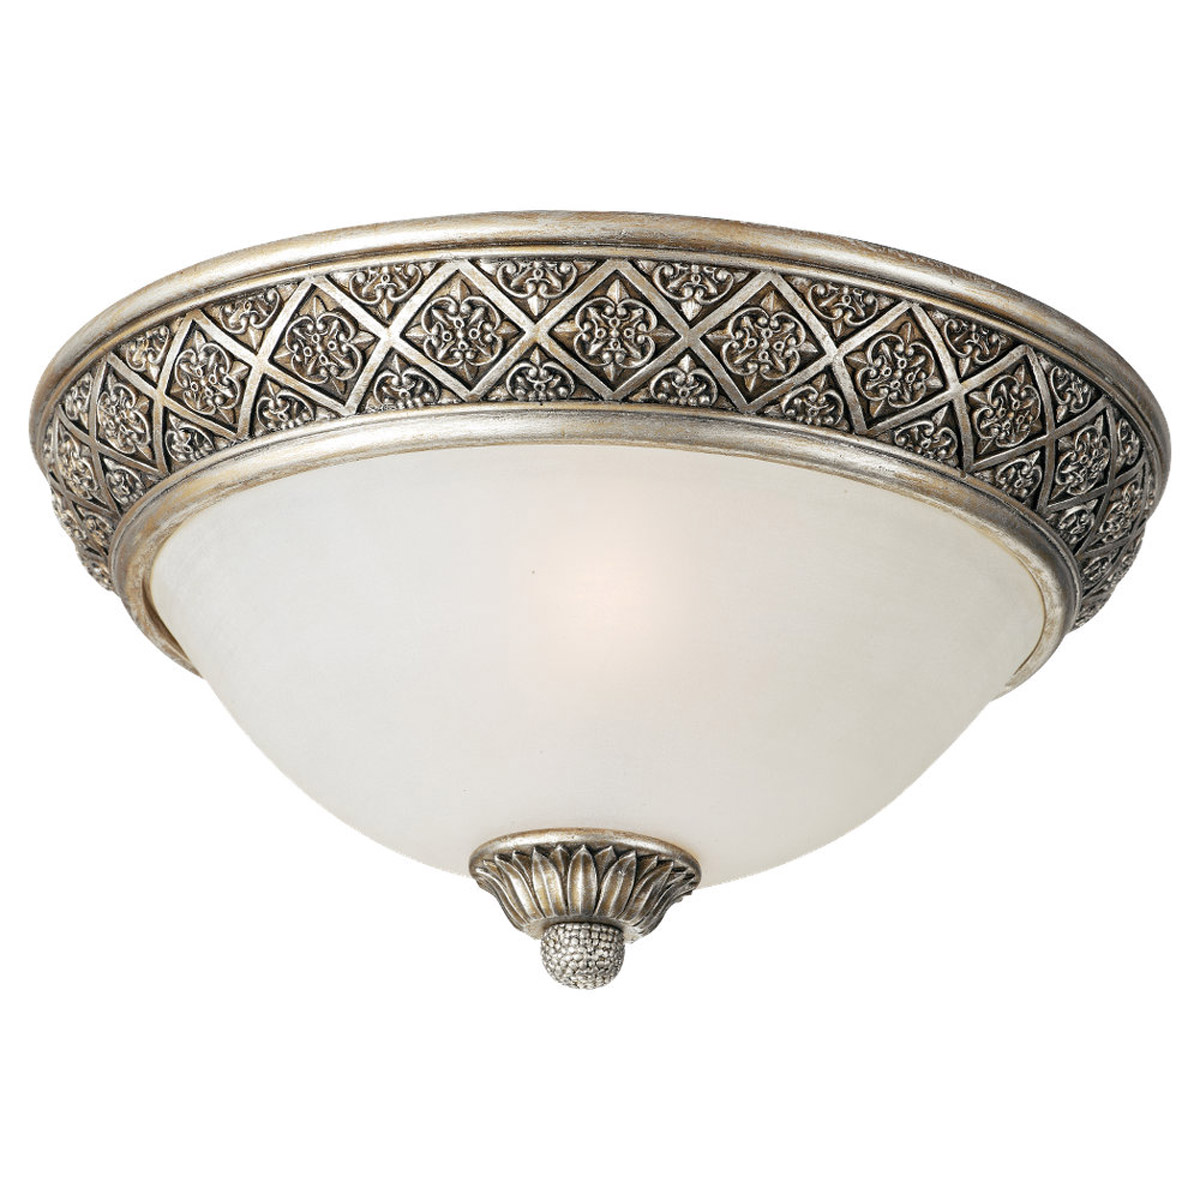 Sea Gull Lighting Highlands 2 Light Flush Mount in Palladium 75250-824